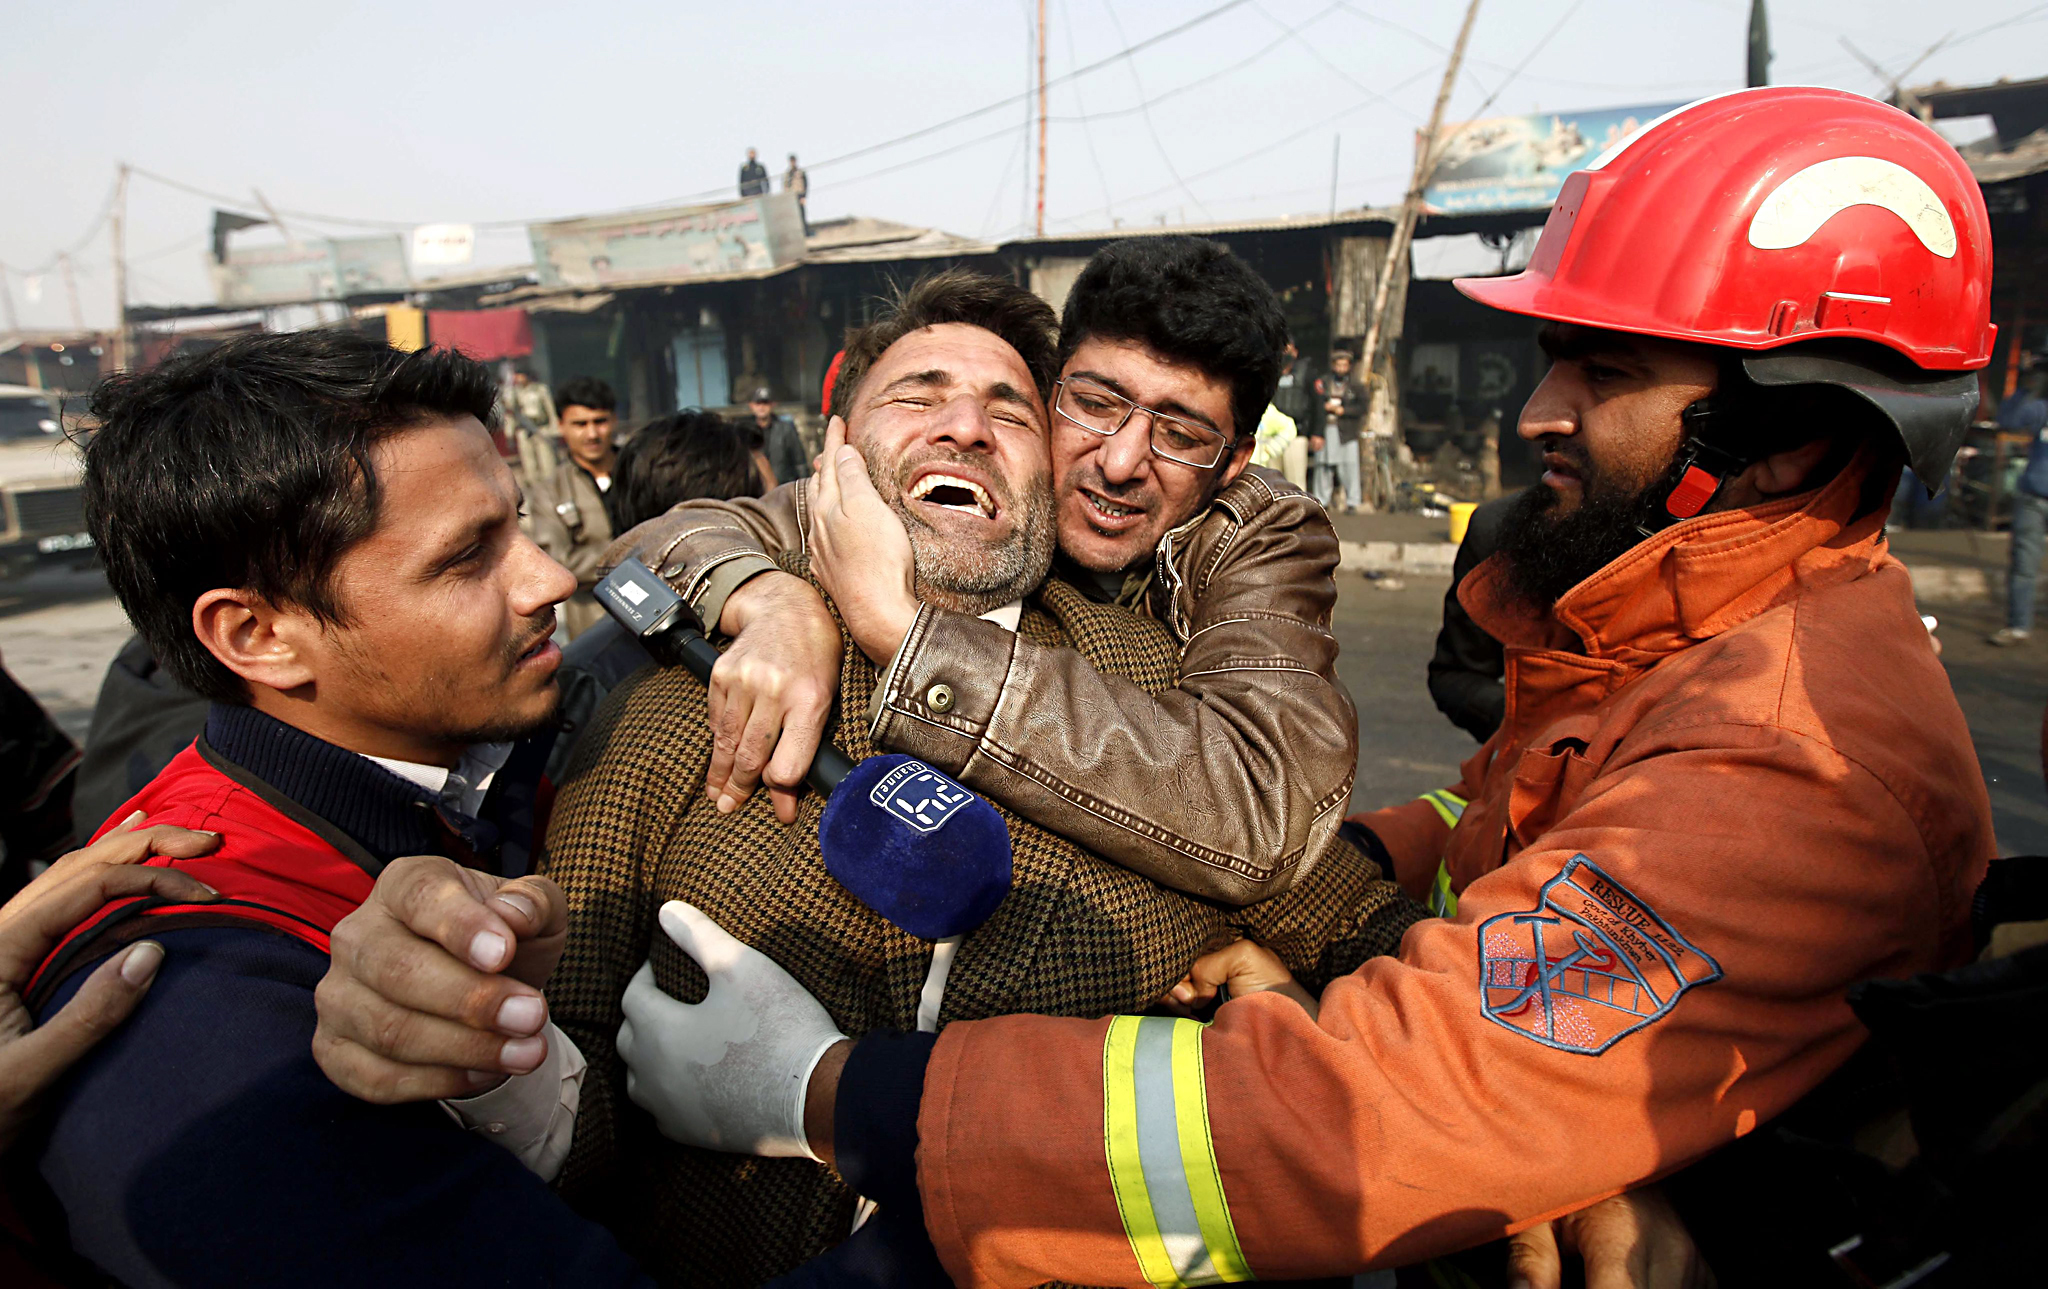 Bomb kills ten on Pakistan-Afghan highway...epa05110432 Rescue workers comfort a relative of victim of bomb blast, in Jamrud area of Khyber tribal district, Pakistan, 19 January 2016. A bomb hit a checkpoint in the north-western Pakistani city of Peshawar on 19 January, killing ten people and wounding over a dozen, officials said. Police guards and paramilitary troops guarding a highway leading to Afghanistan were targeted in Jamrud area of Khyber tribal district, officials said. The bomb was planted on a motorcycle parked near the checkpoint, Shah said, citing preliminary investigation findings.  EPA/ARSHAD ARBAB